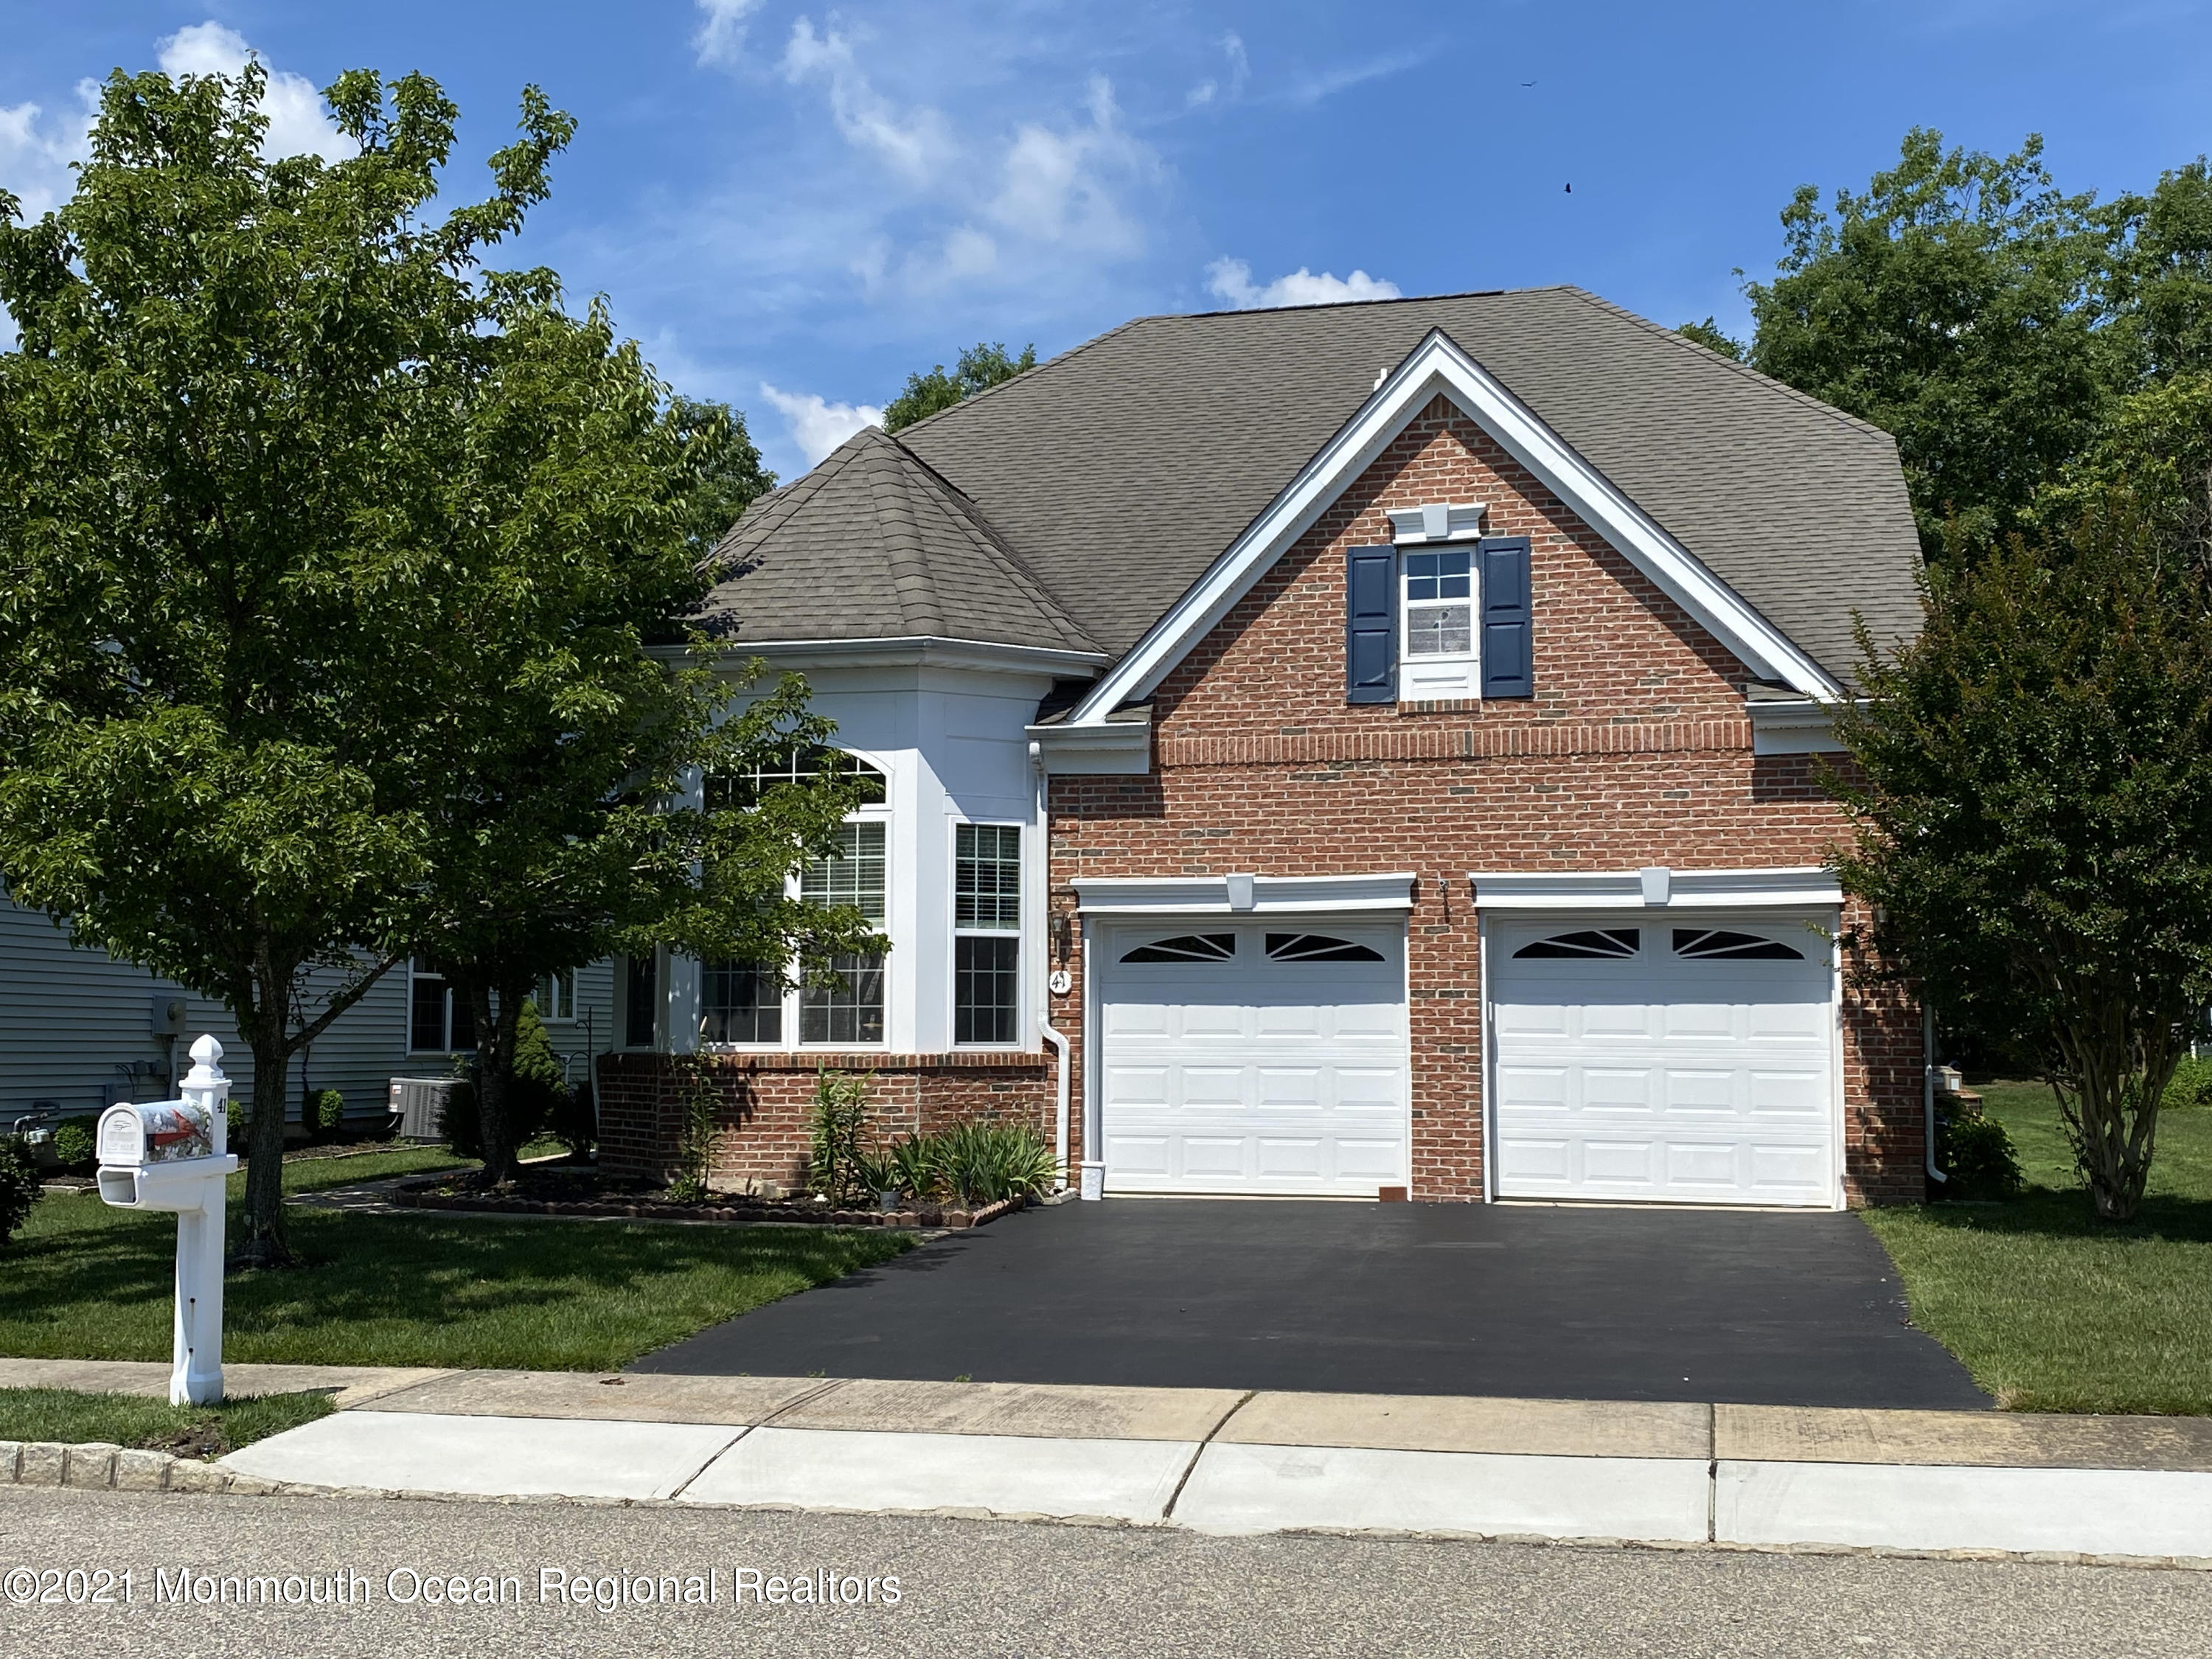 This is a Coming Soon Listings - No showings before Sunday July 11, 2021 Beautiful home in Horizons at Barnegat waiting just for you.  This location is wonderful and backs up to the wooded area.  If you are looking for a beautiful home with plenty of room for guests and plenty of storage in a wonderful neighborhood then your search is over now.  Plenty of shopping and close to the beaches of LBI along with being close to Atlantic City for plenty of entertainment.